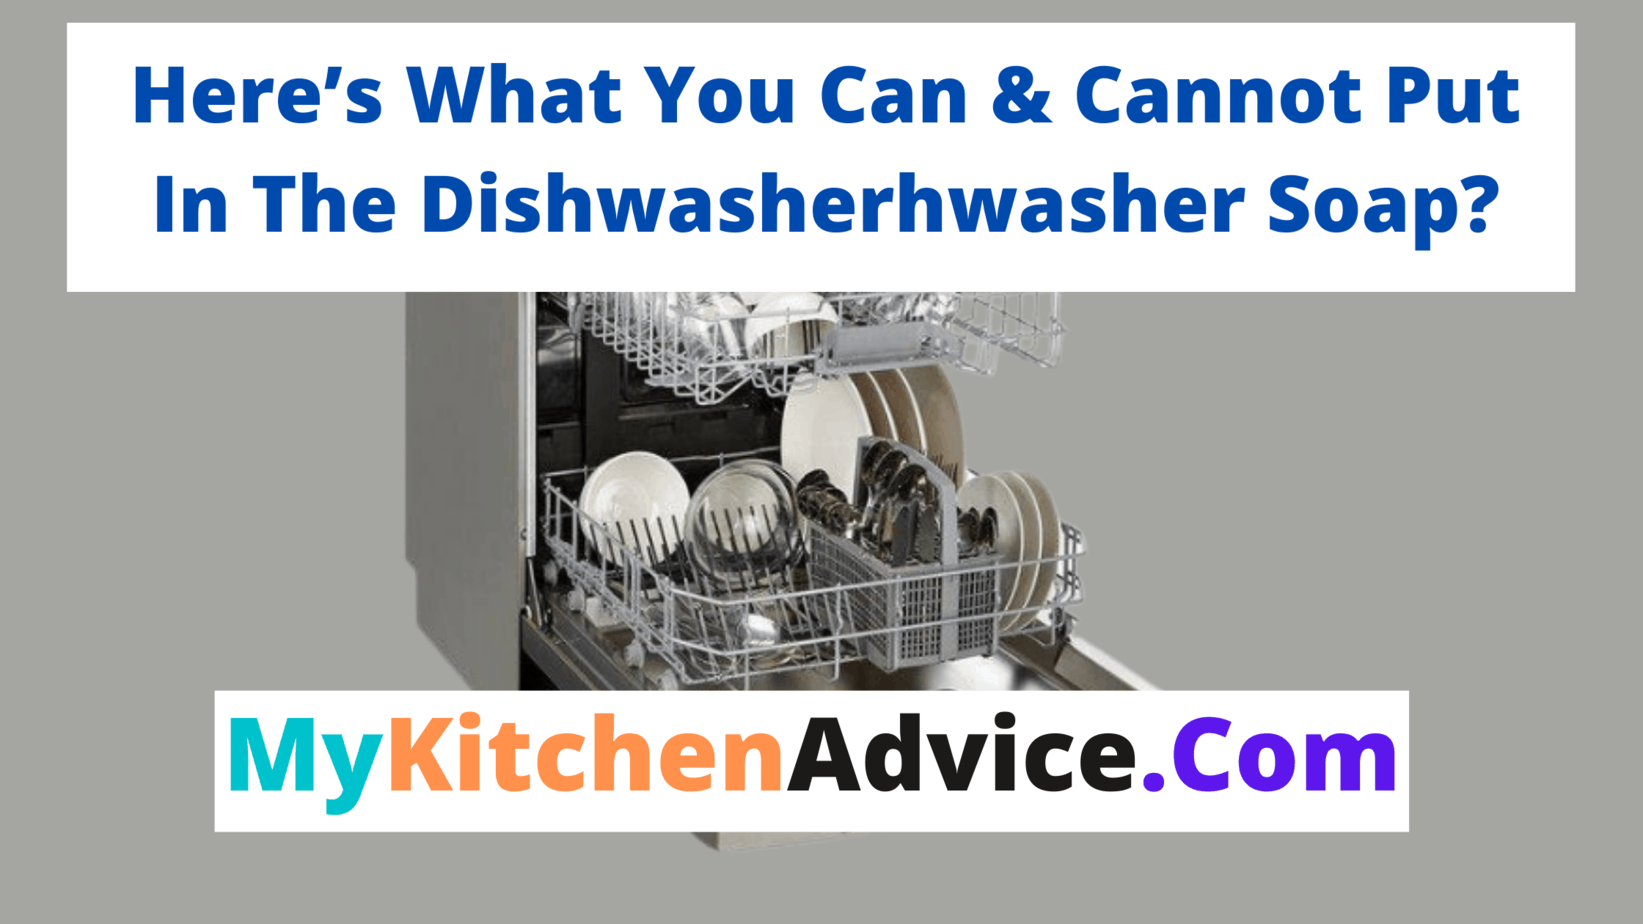 What You Can & Cannot Put In The Dishwasher